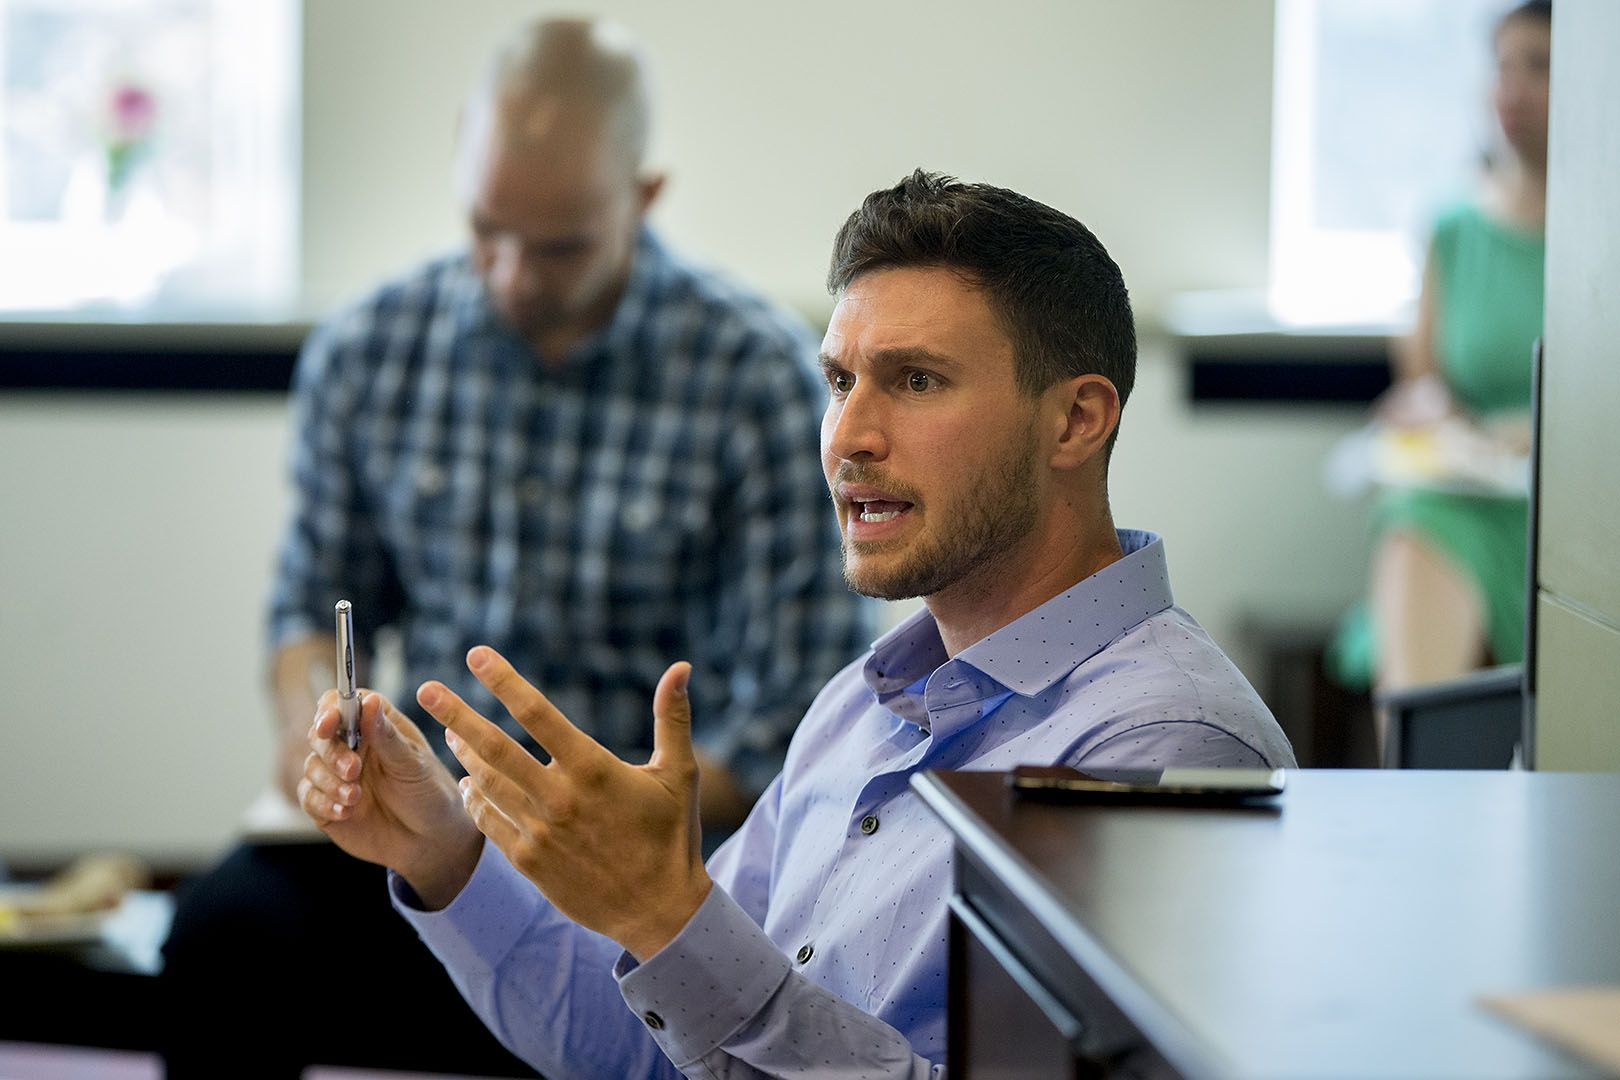 Christopher Petrella '06 makes a point during a meeting of the college's Justice and Equity Reading Group on Sept. 13, 2017. Petrella, faculty lecturer and associate director of programs for the Office of Equity and Diversity, is the group organizer. (Phyllis Graber Jensen/Bates College)